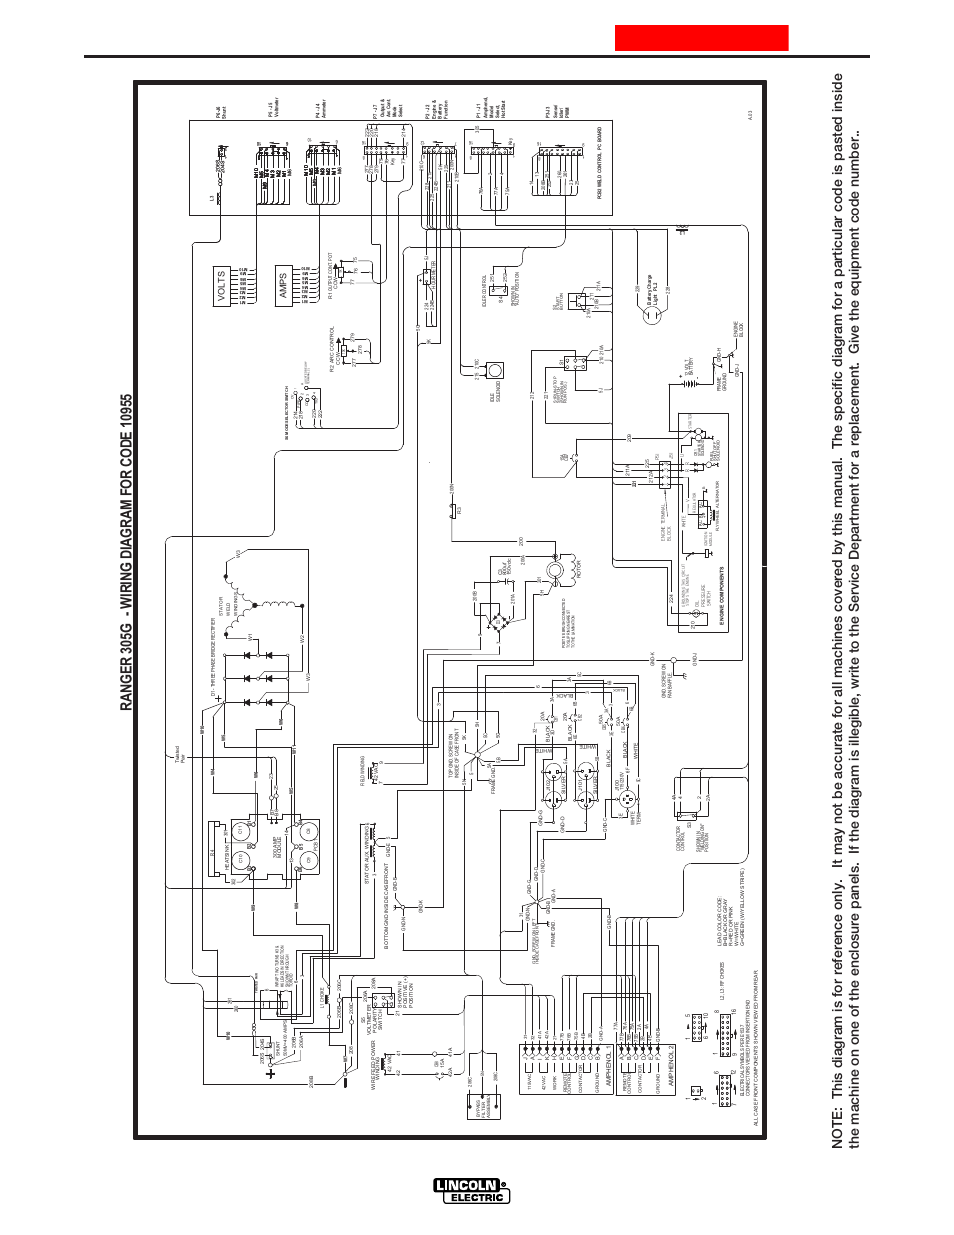 lincoln electric im742 ranger 305 g page46 lincoln ranger 305d wiring diagram lincoln wiring diagrams lincoln ranger 305d wiring diagram at bakdesigns.co